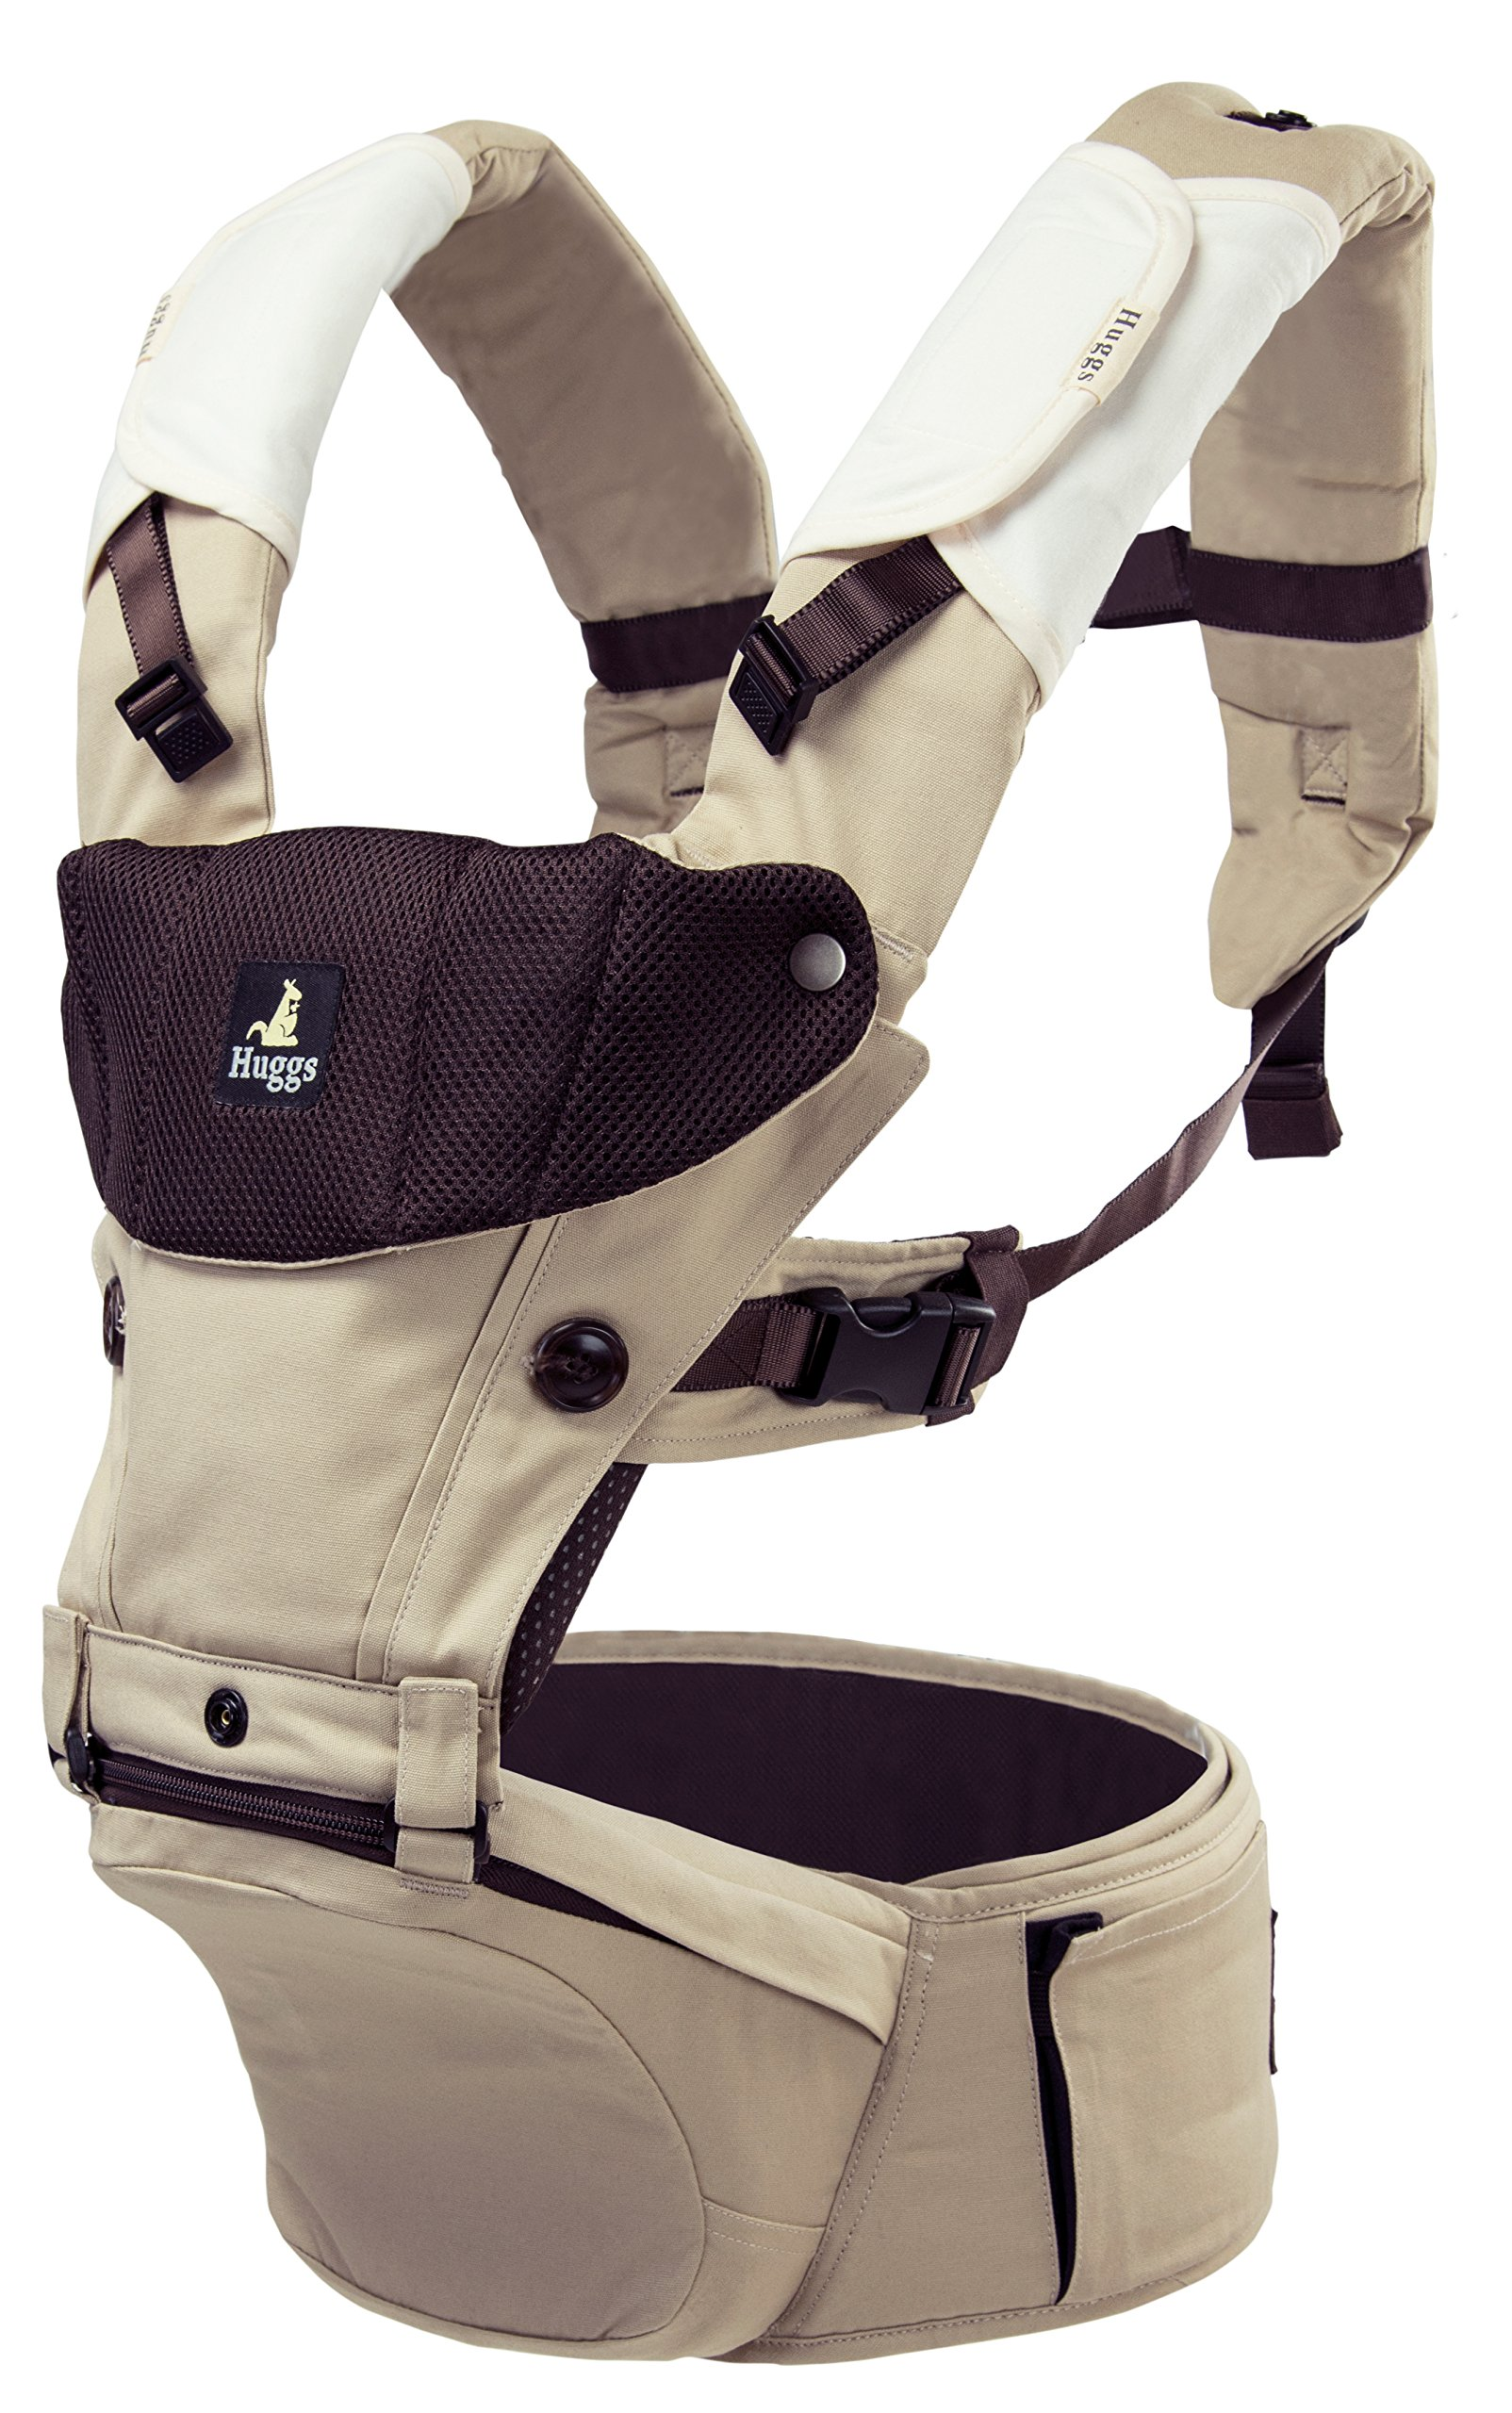 18f77a42c7e Abiie HUGGS Baby Carrier Hip Seat - Approved by U.S. Safety Standards -  Healthy Sitting Position.